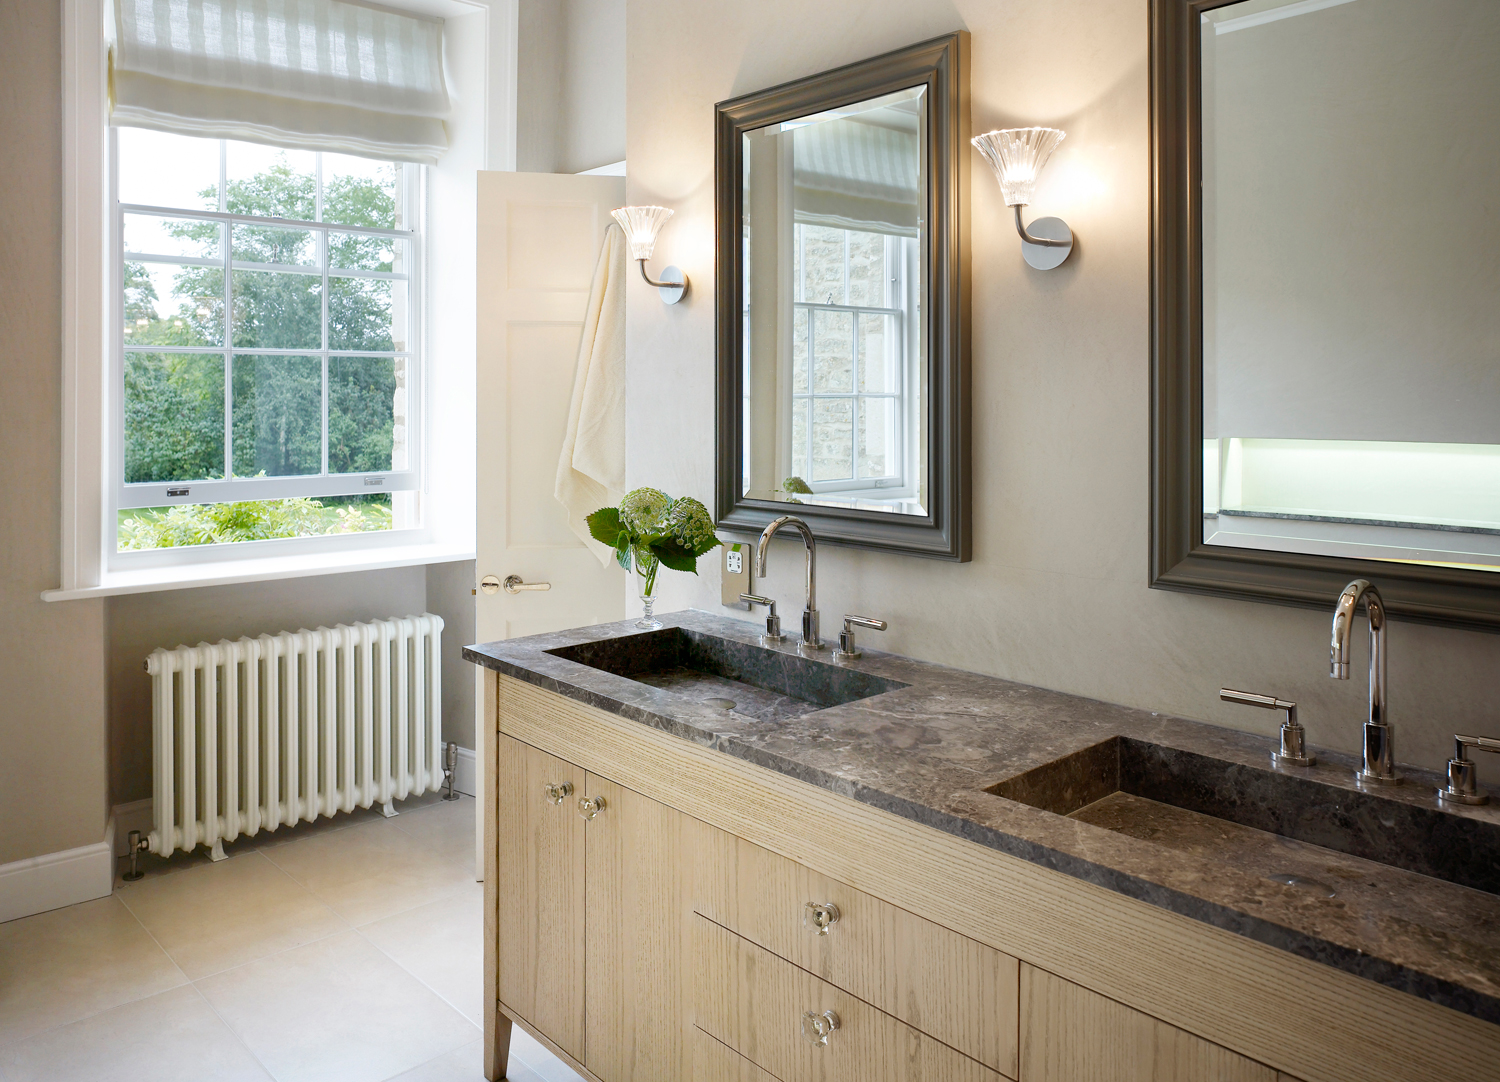 Jill Scholes Interior Design, Oxfordshire Country House, master bathroom double basin with bespoke cabinetry